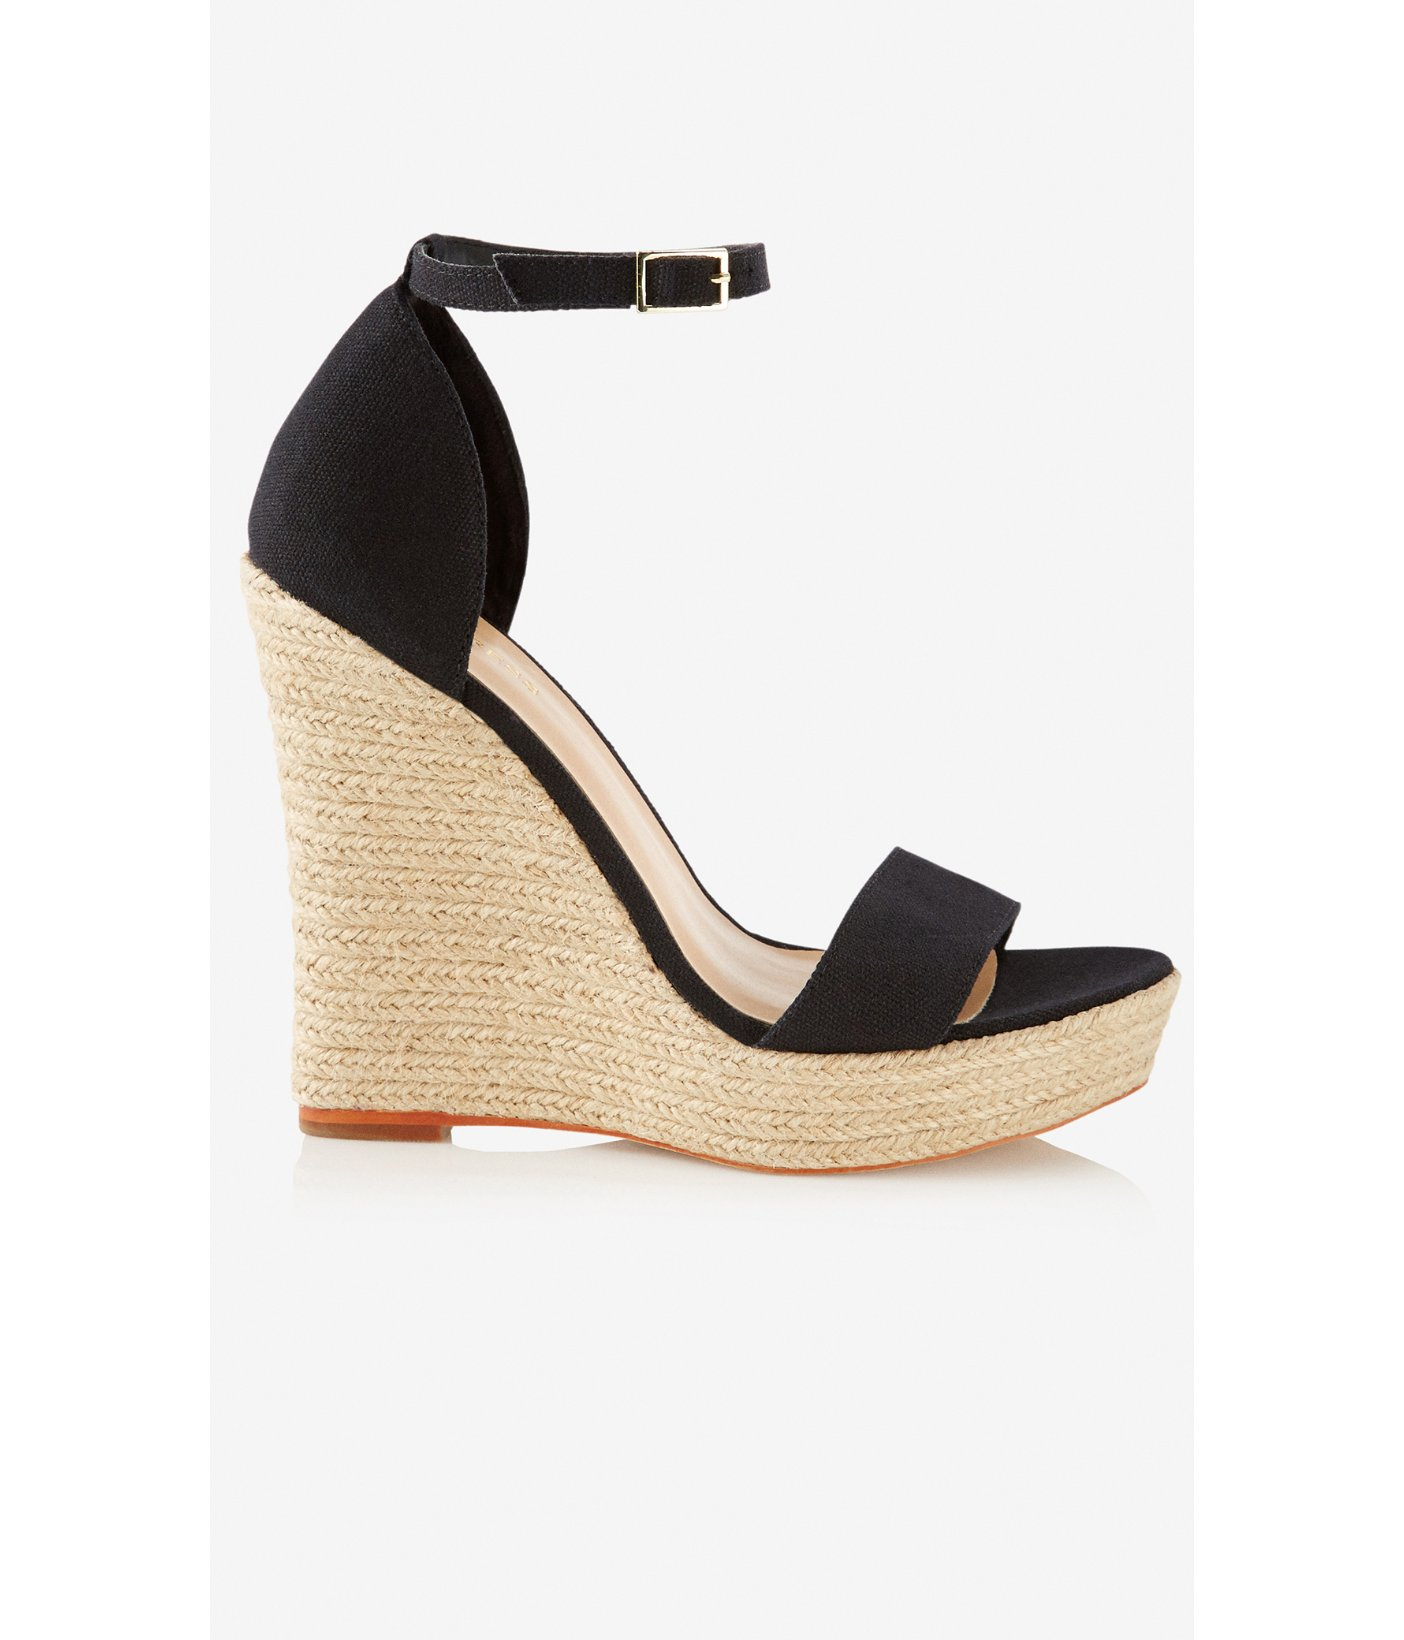 fdf04e04c85 Express Espadrille Wedge Sandal in Black - Lyst